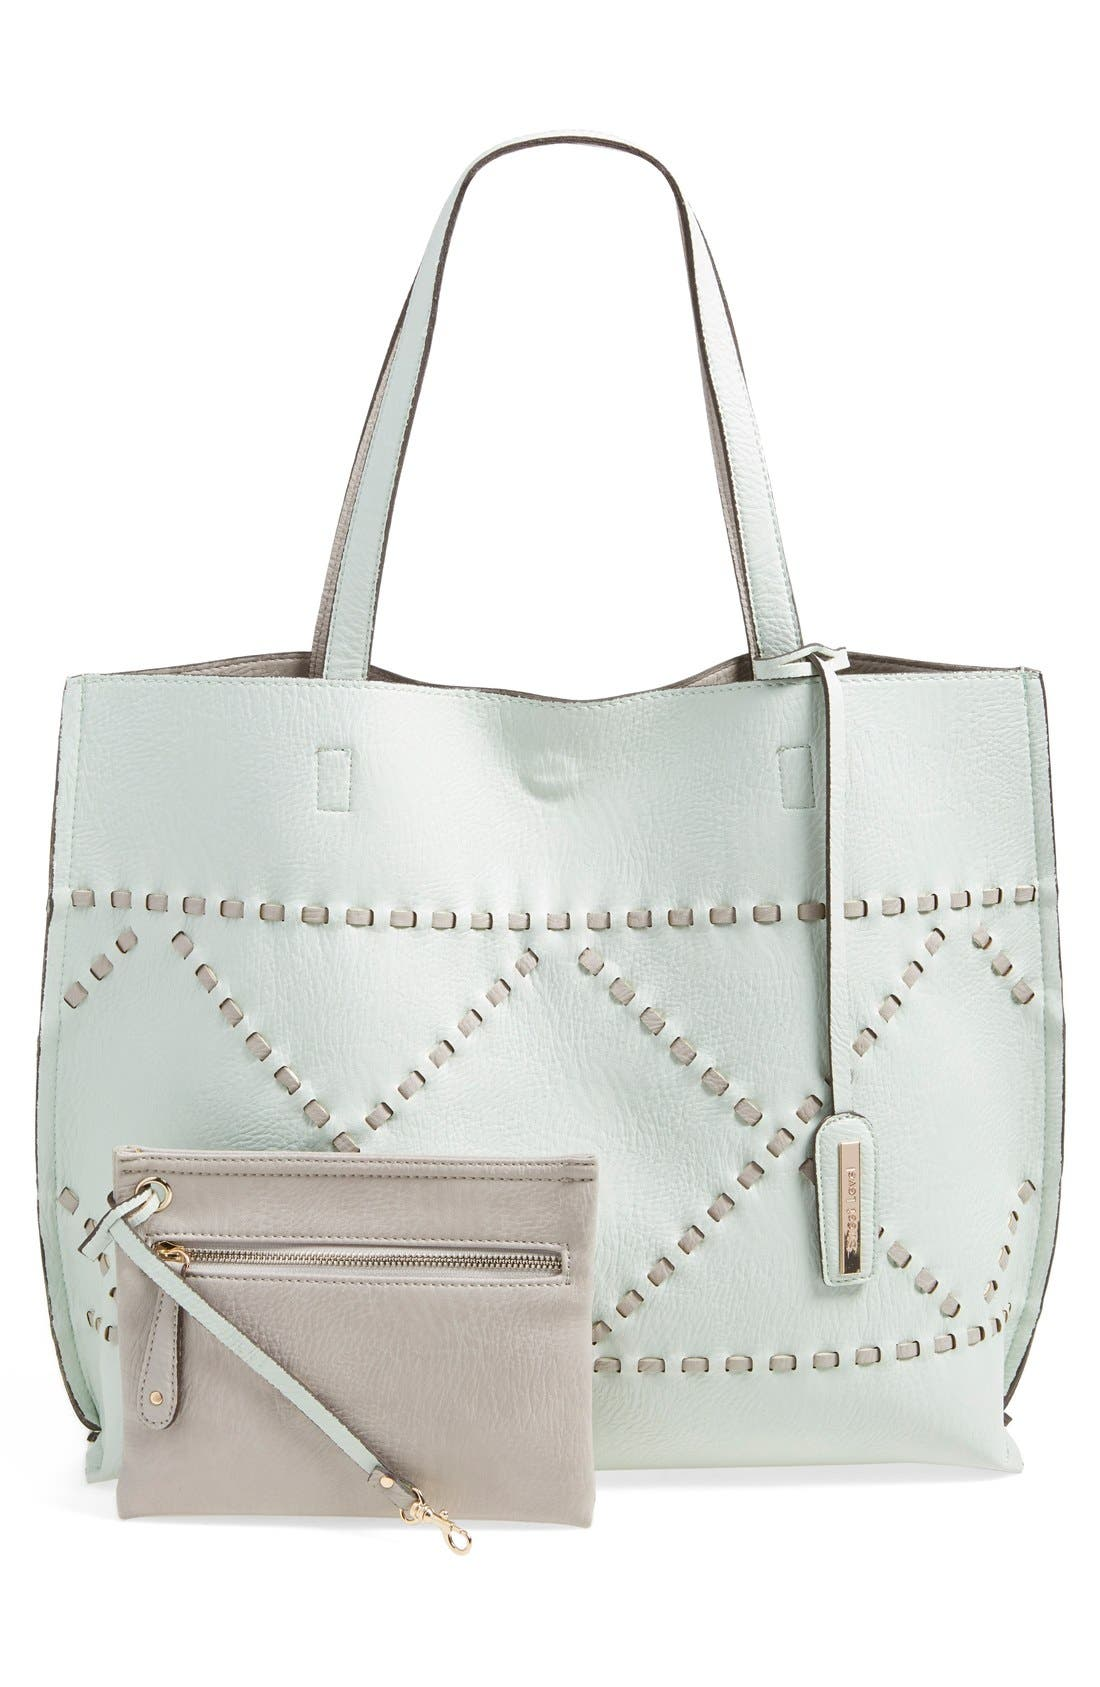 Alternate Image 1 Selected - Street Level Reversible Woven Faux Leather Tote